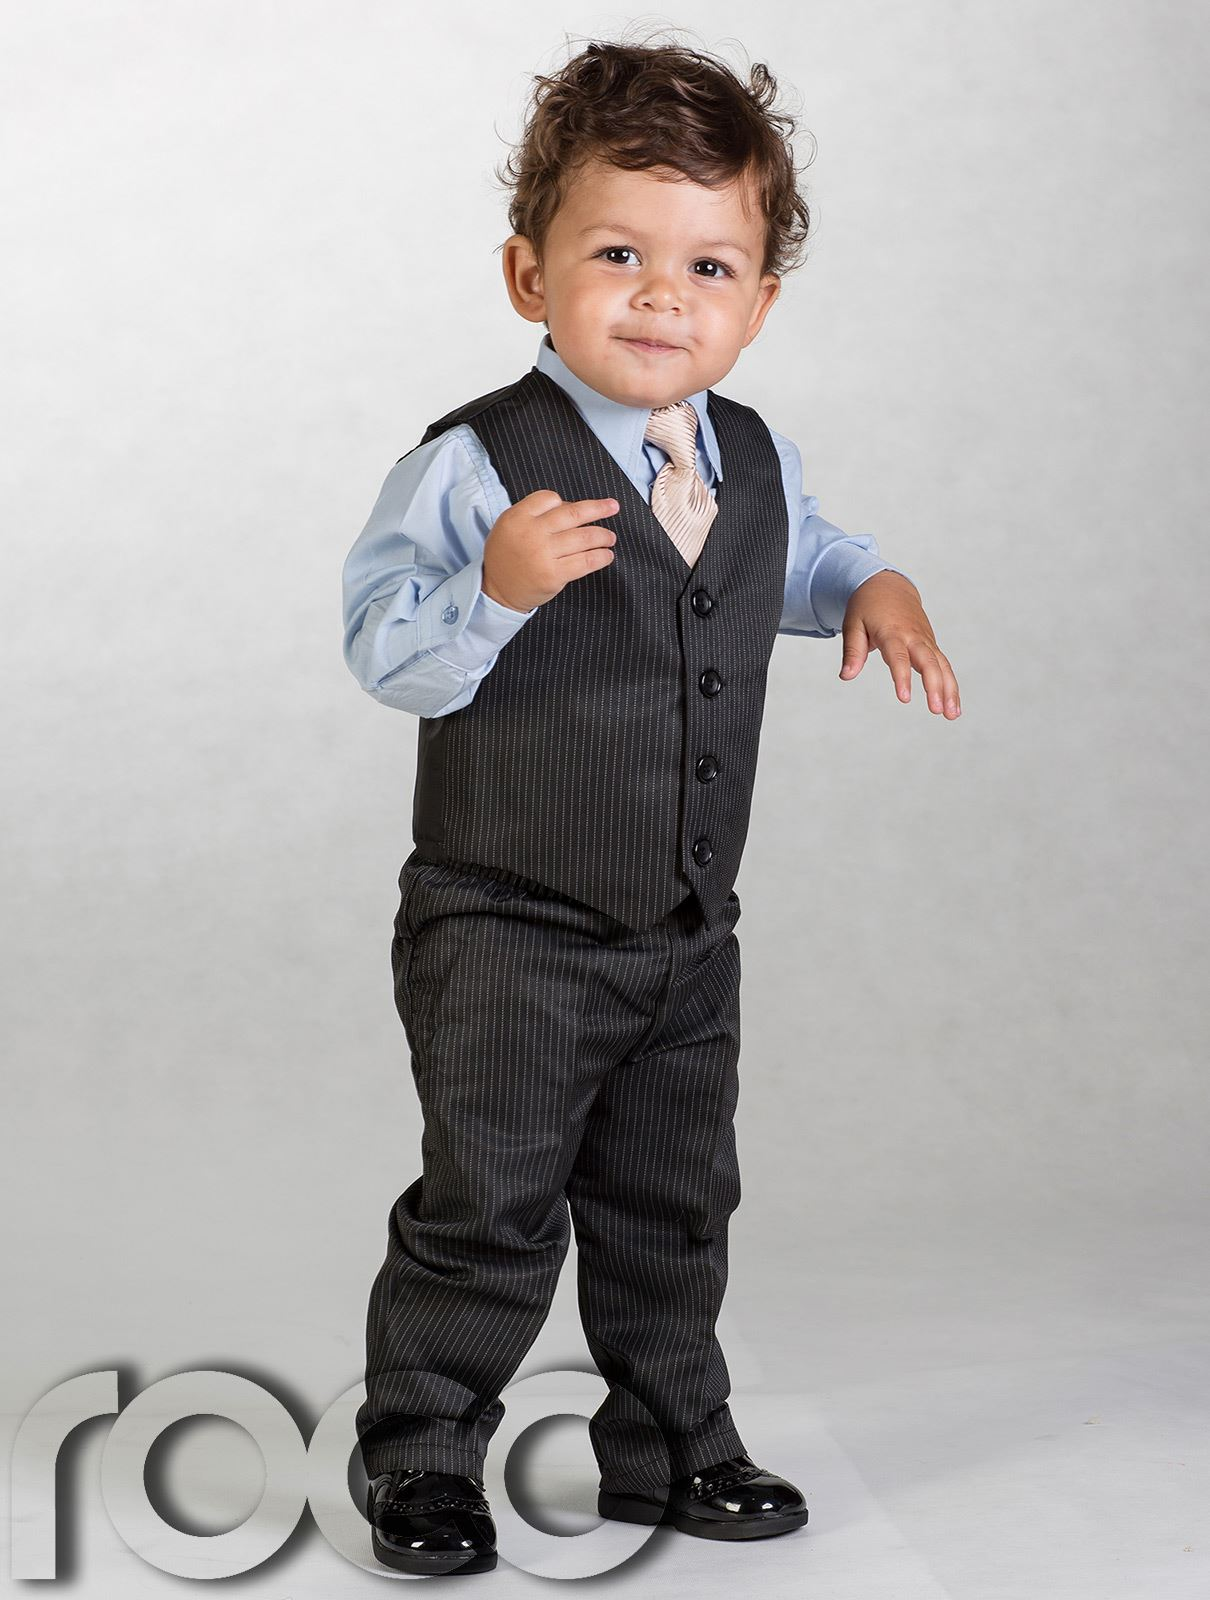 Need a suit for a page boy? At tuxedosonline. com we have high quality suits for children of any size, from toddler to teens. We have nice suit packages which include a shirt, coat, pants, and tie, or you can buy suit separates for your little ones.